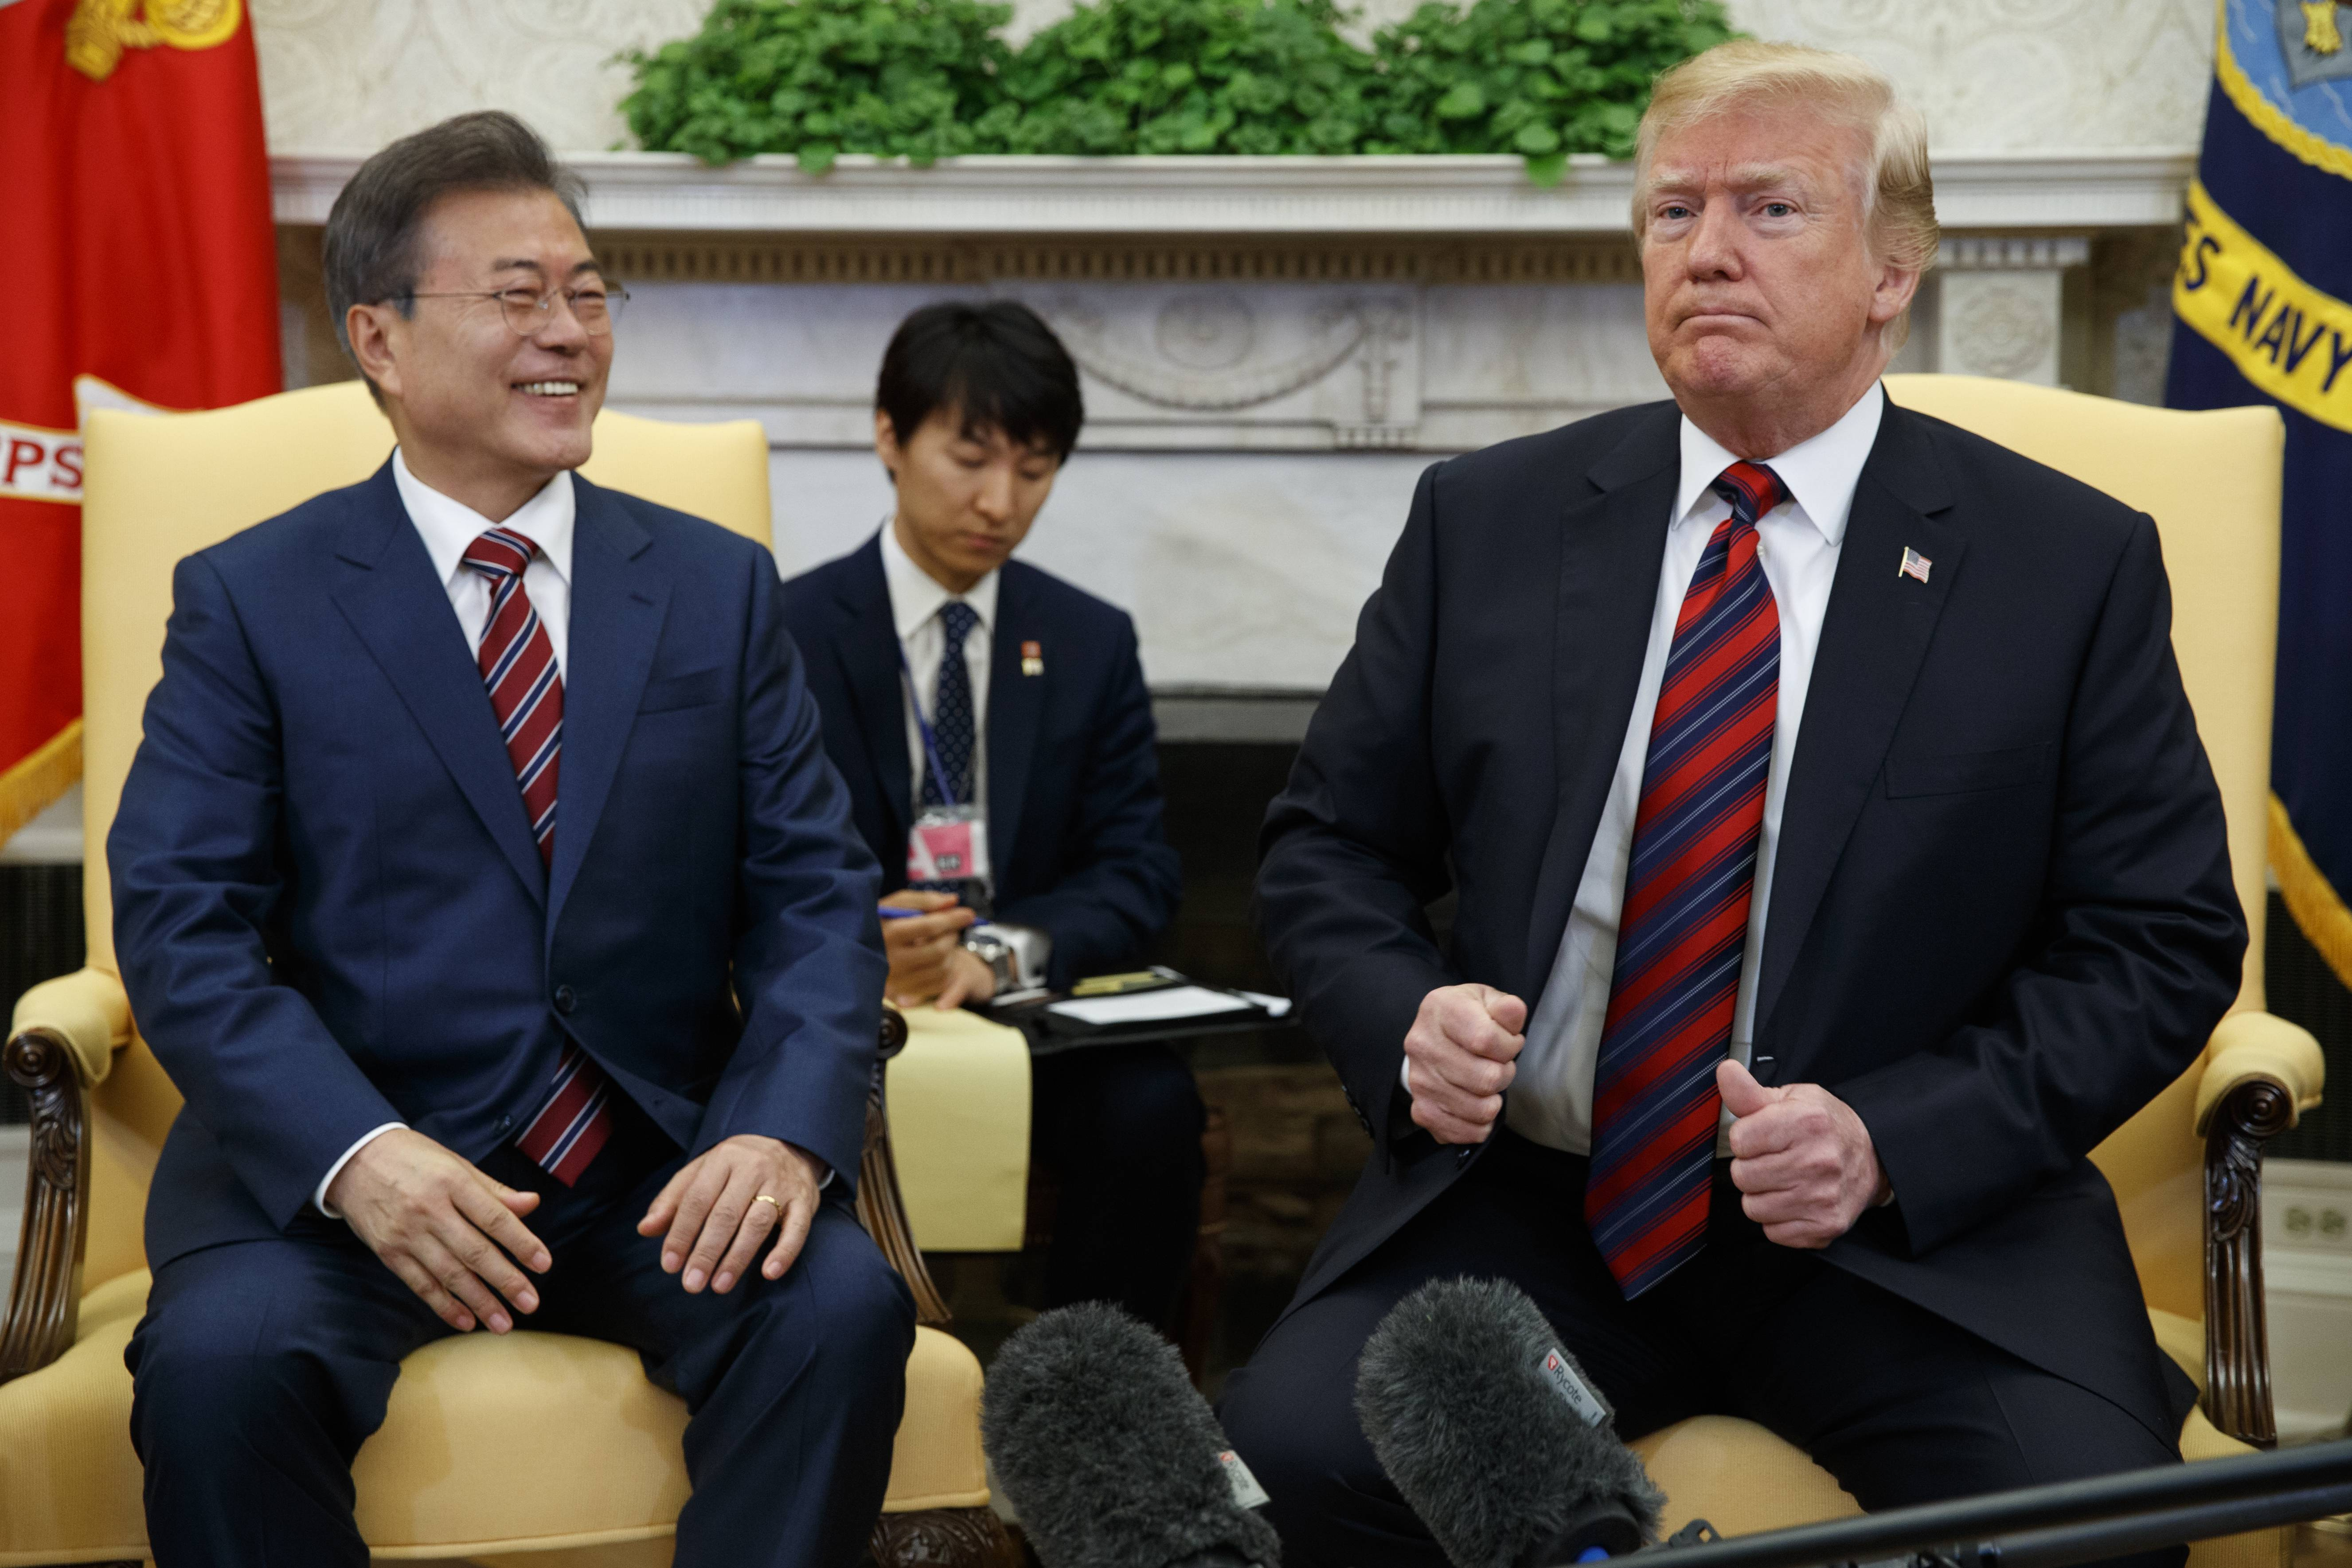 President Donald Trump meets with South Korean President Moon Jae-In in the Oval Office of the White House, Tuesday, May 22, 2018, in Washington.